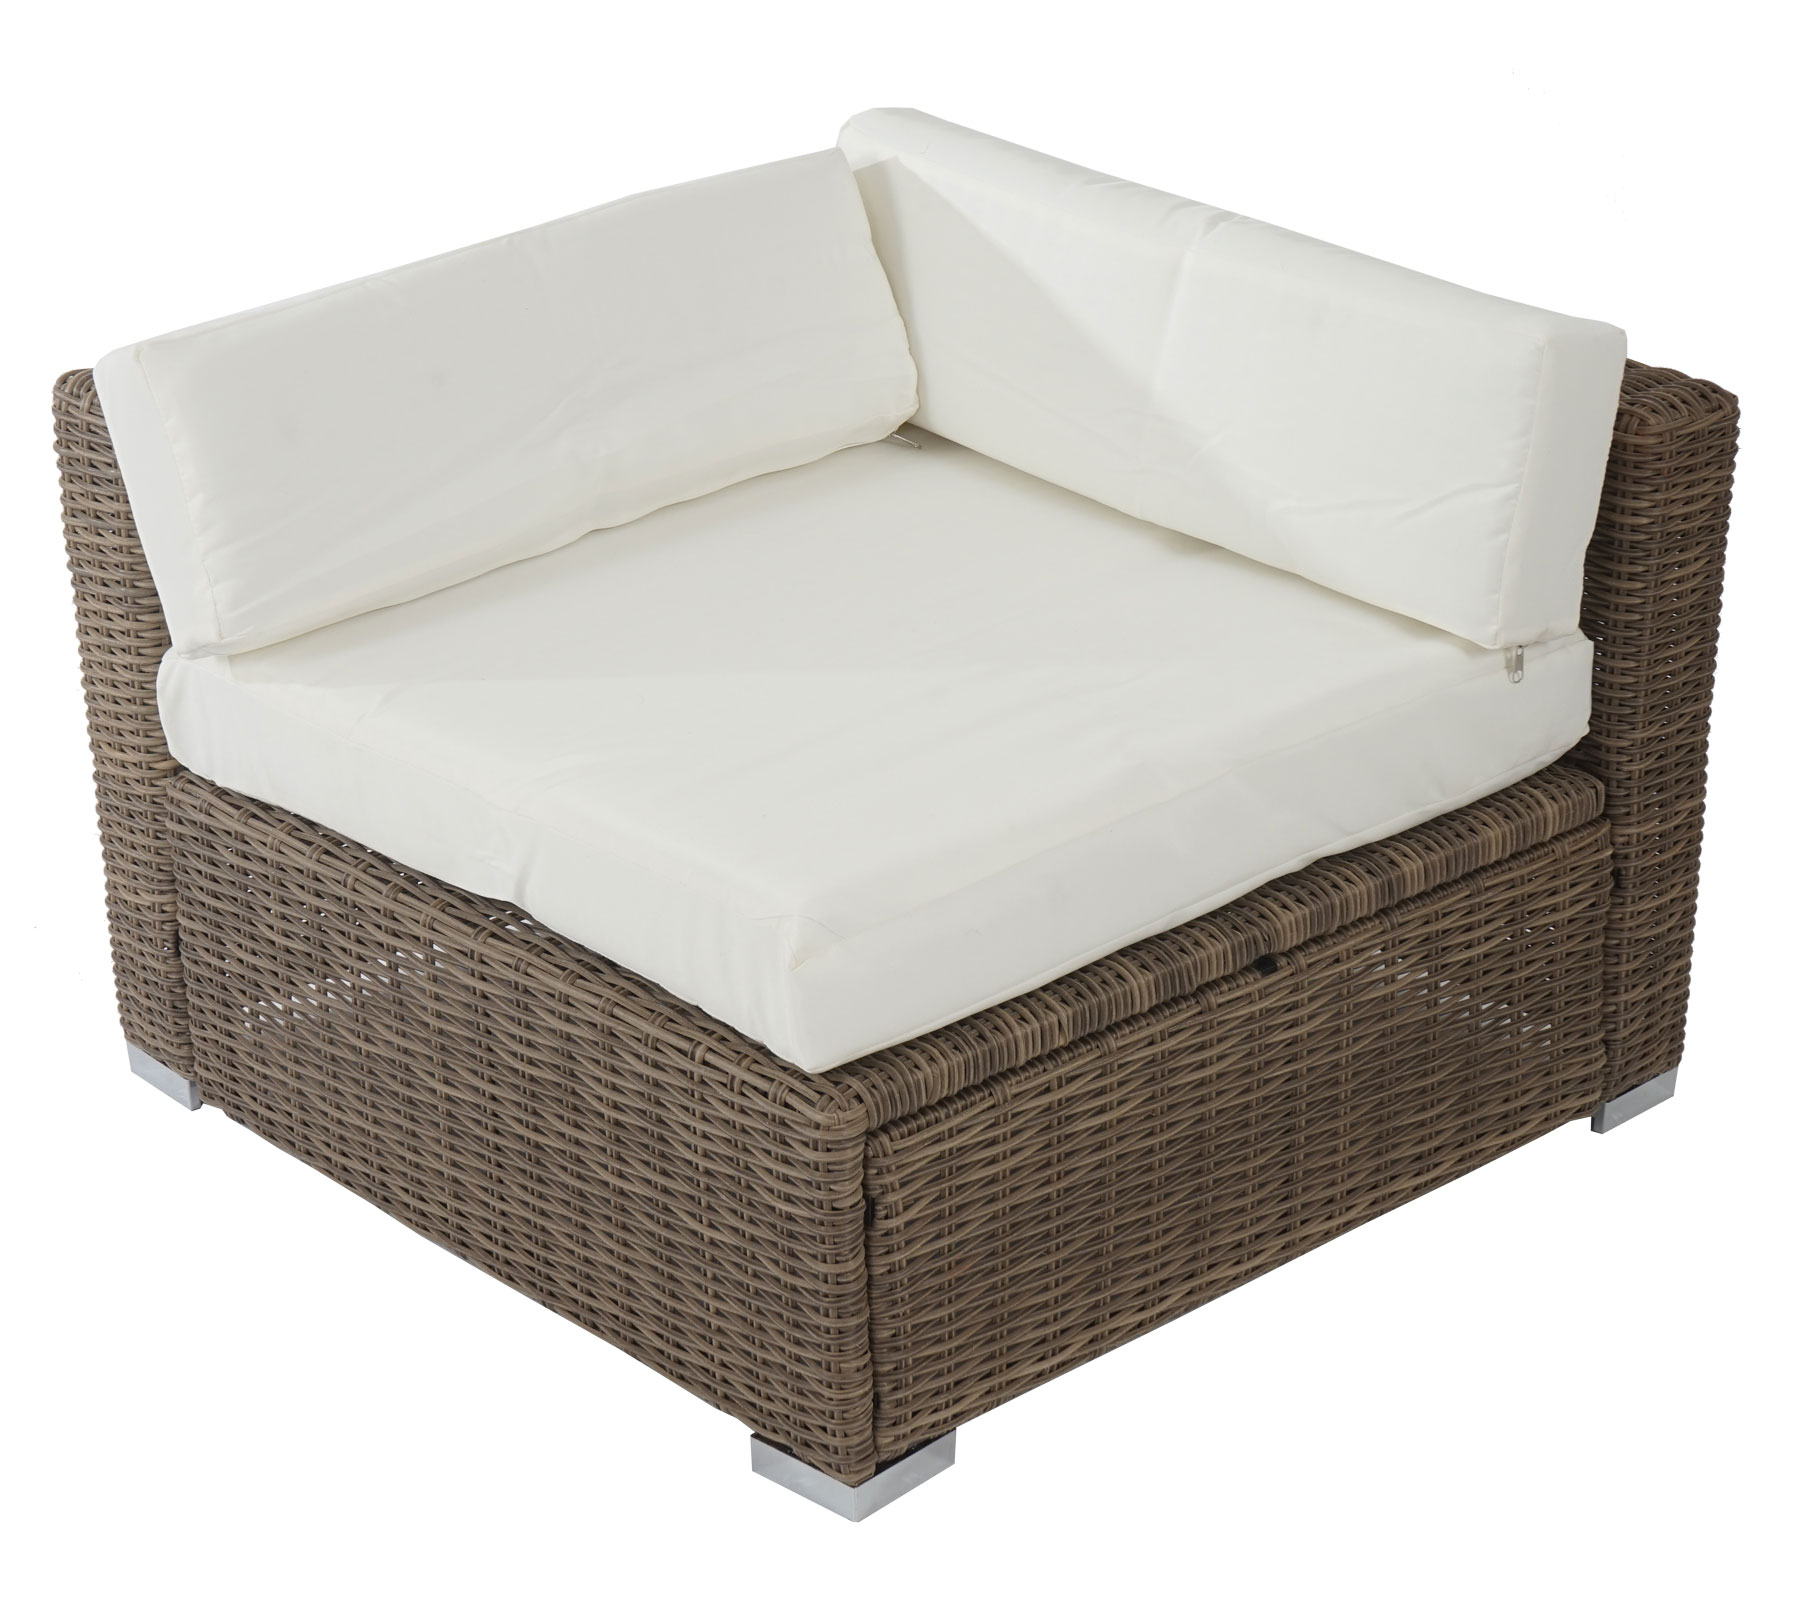 poly rattan sofa garnitur sues lounge set gartengarnitur sitzgruppe gartenm bel ebay. Black Bedroom Furniture Sets. Home Design Ideas